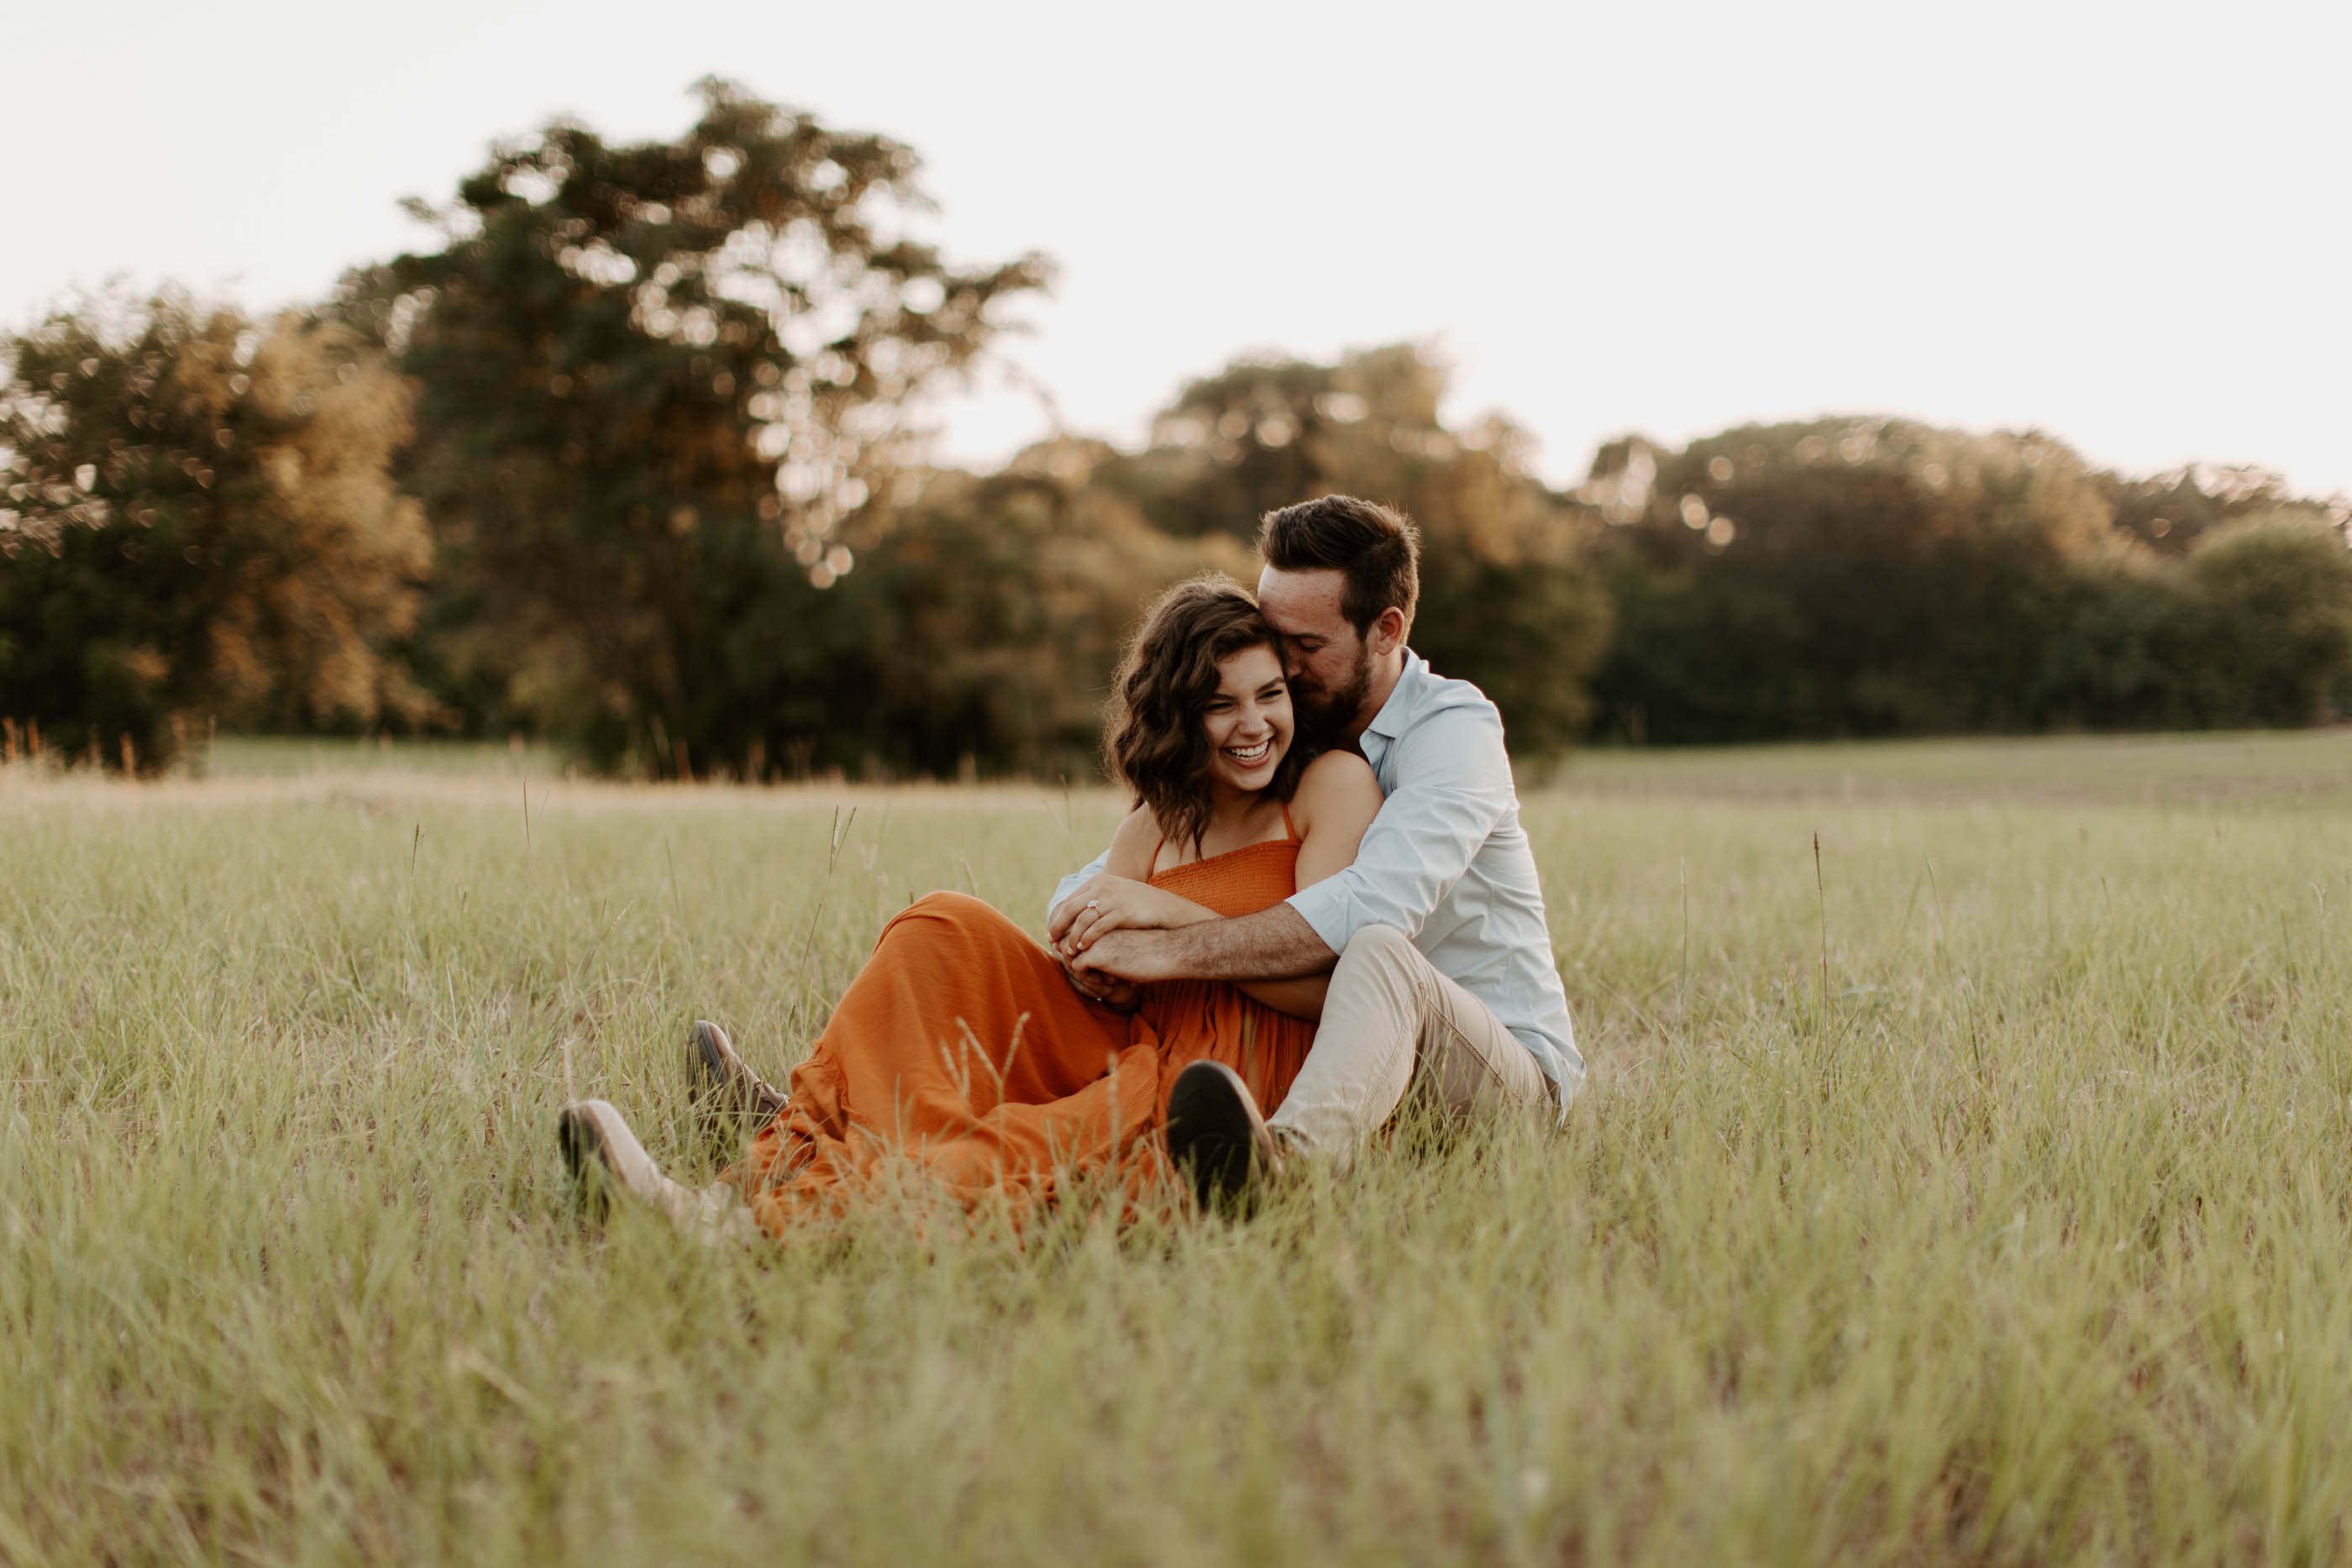 couple cuddling while sitting in grass at sunset